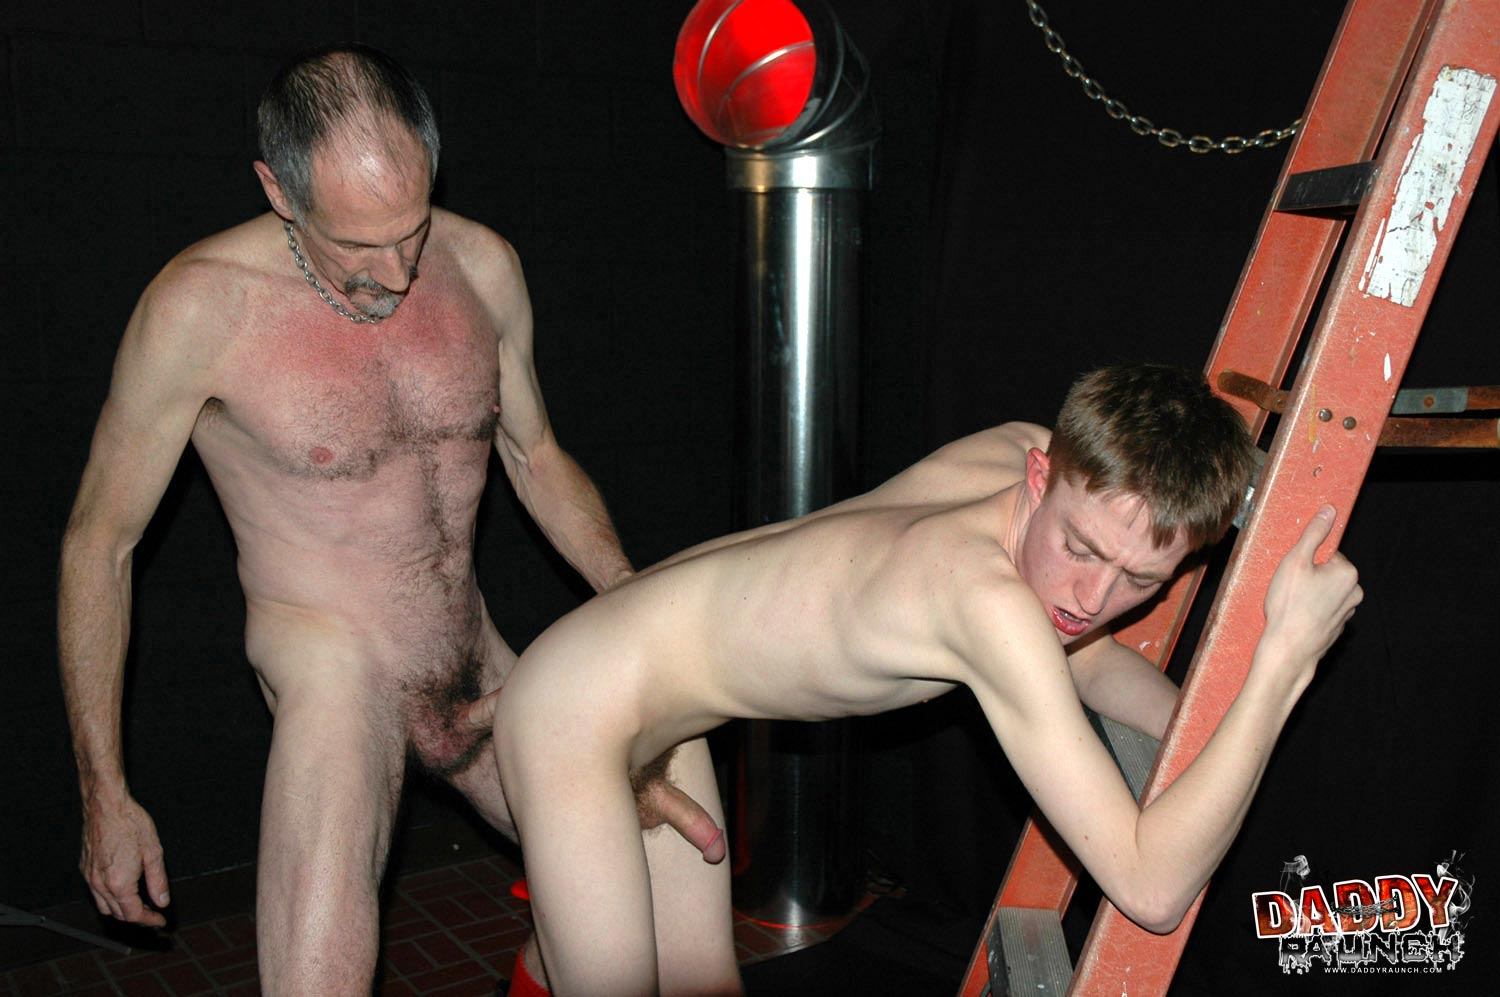 Daddy Raunch Sperm Overload III Daddies Fucking Boys Bareback Amateur Gay Porn 60 Sperm Overload III   Daddies Fucking Their Boys Bareback